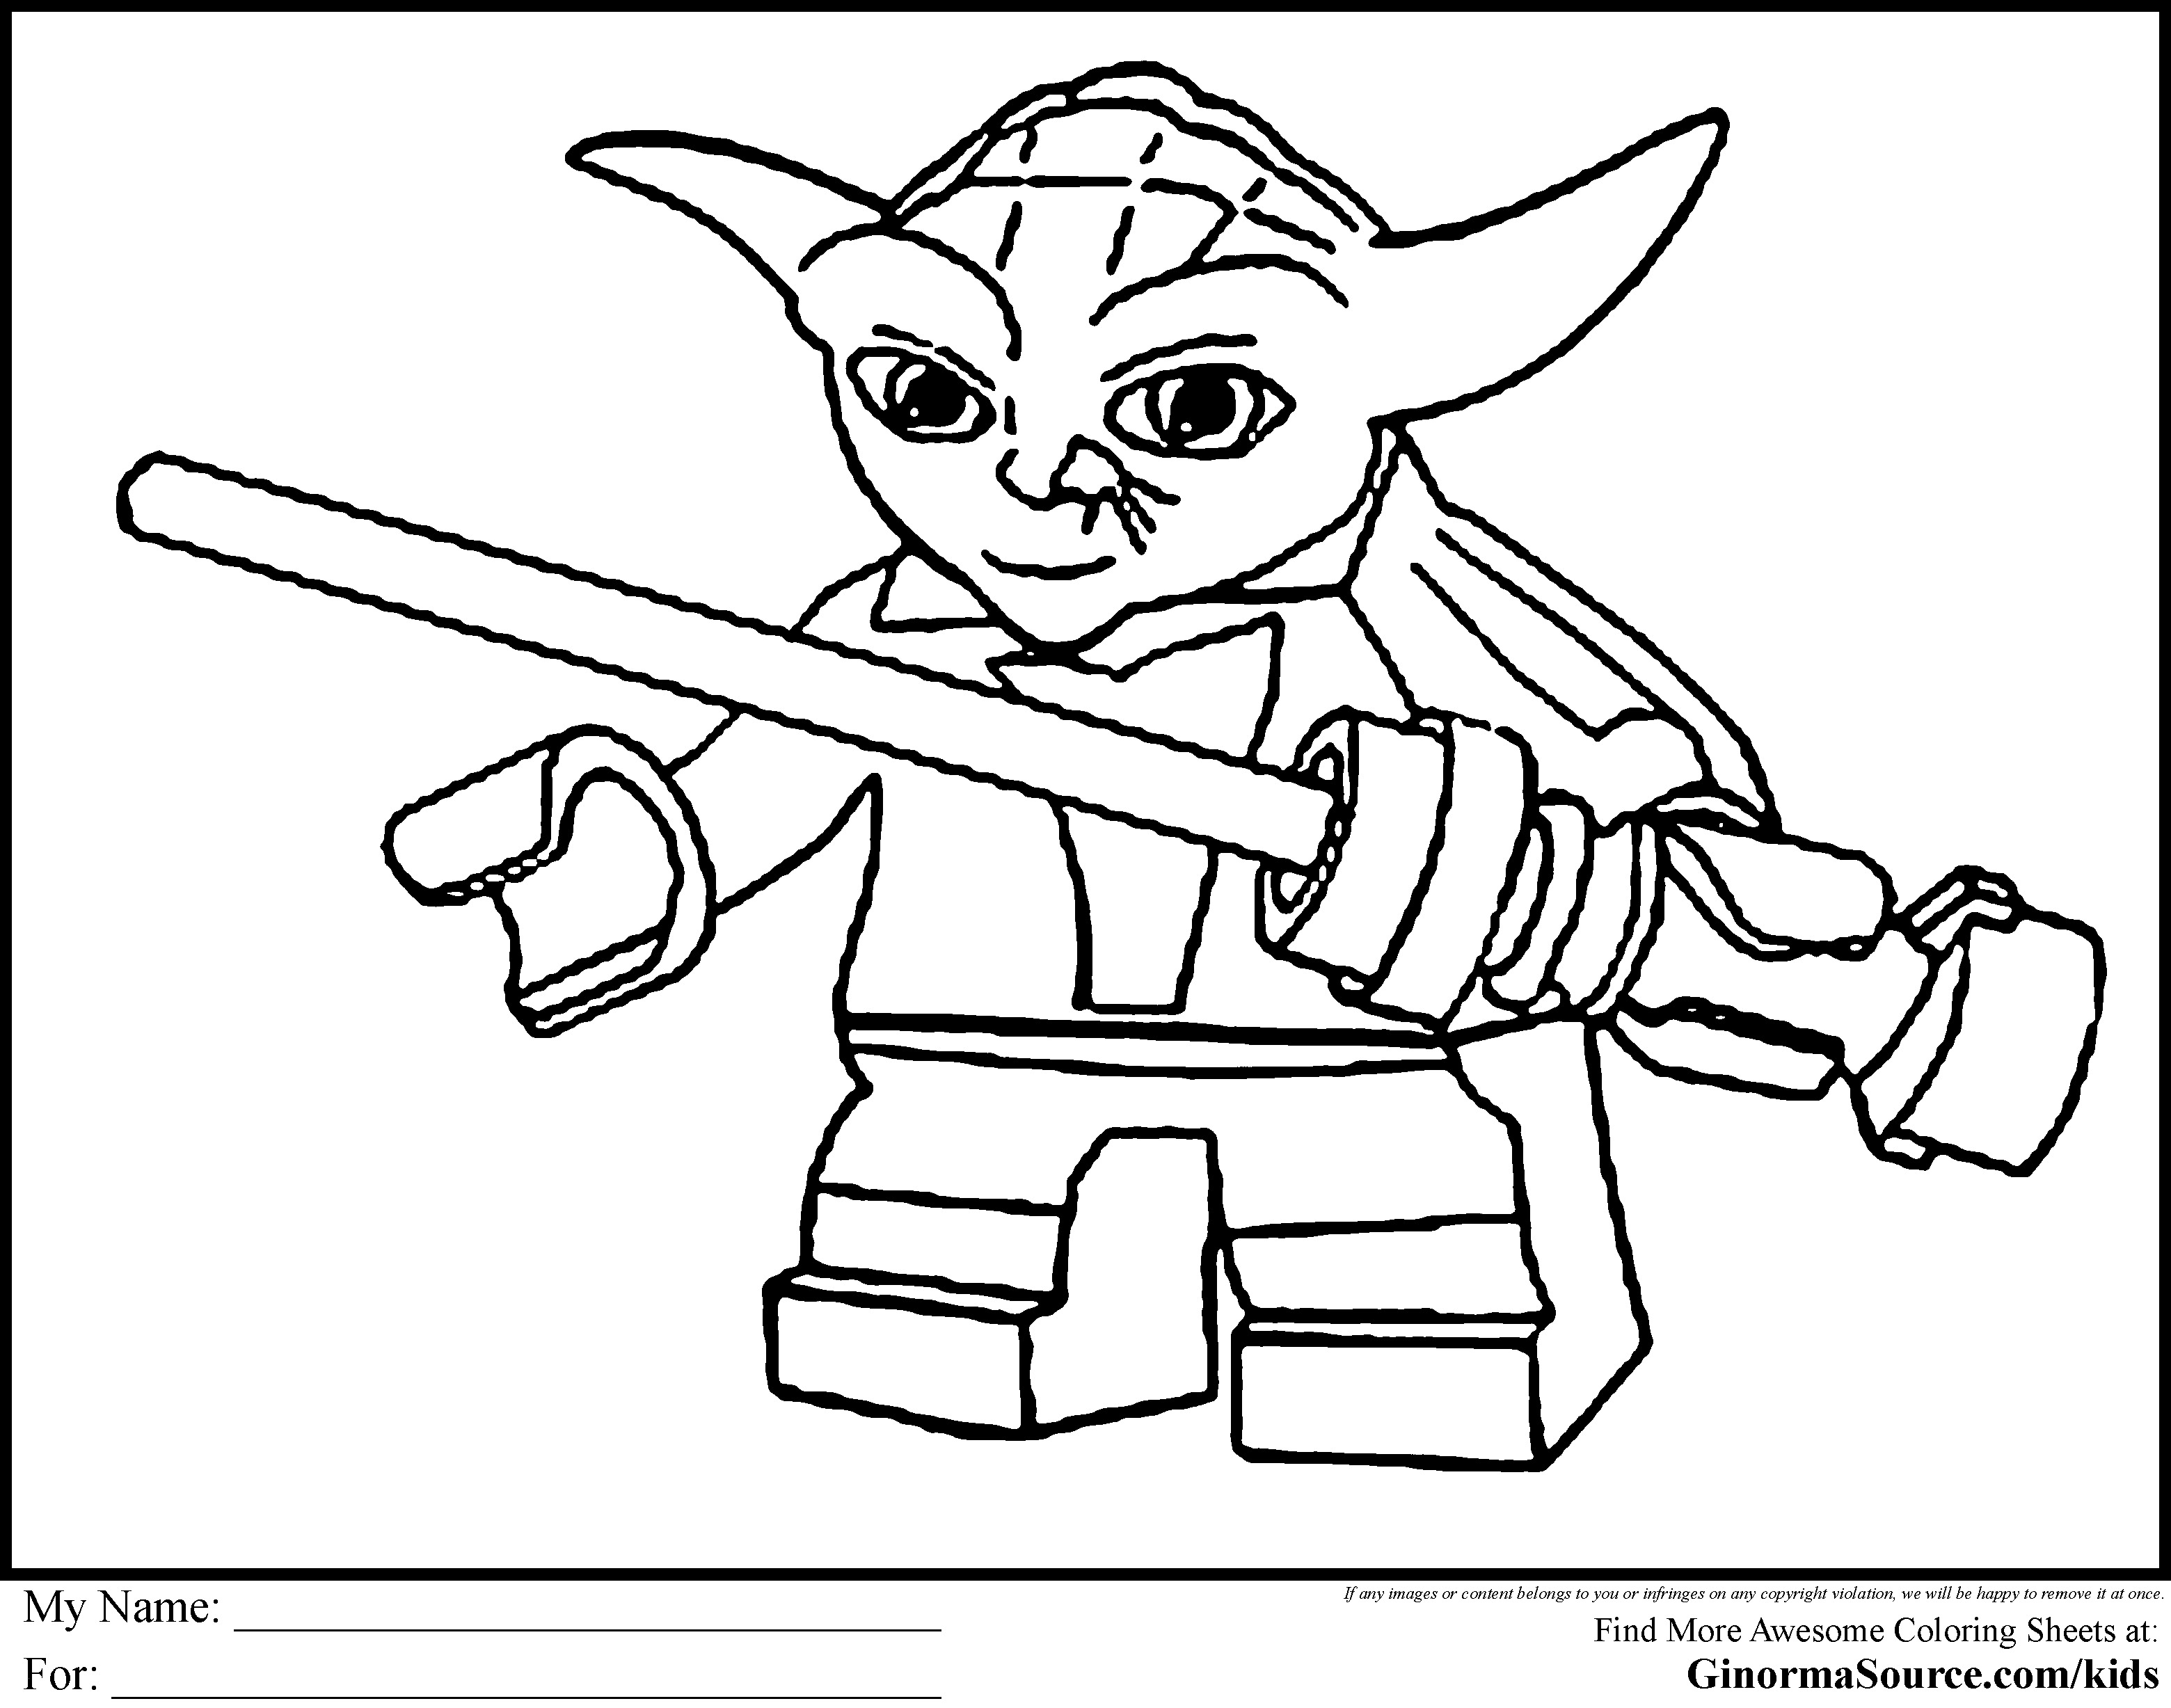 26 Printable Star Wars Coloring Pages Download - Coloring Sheets